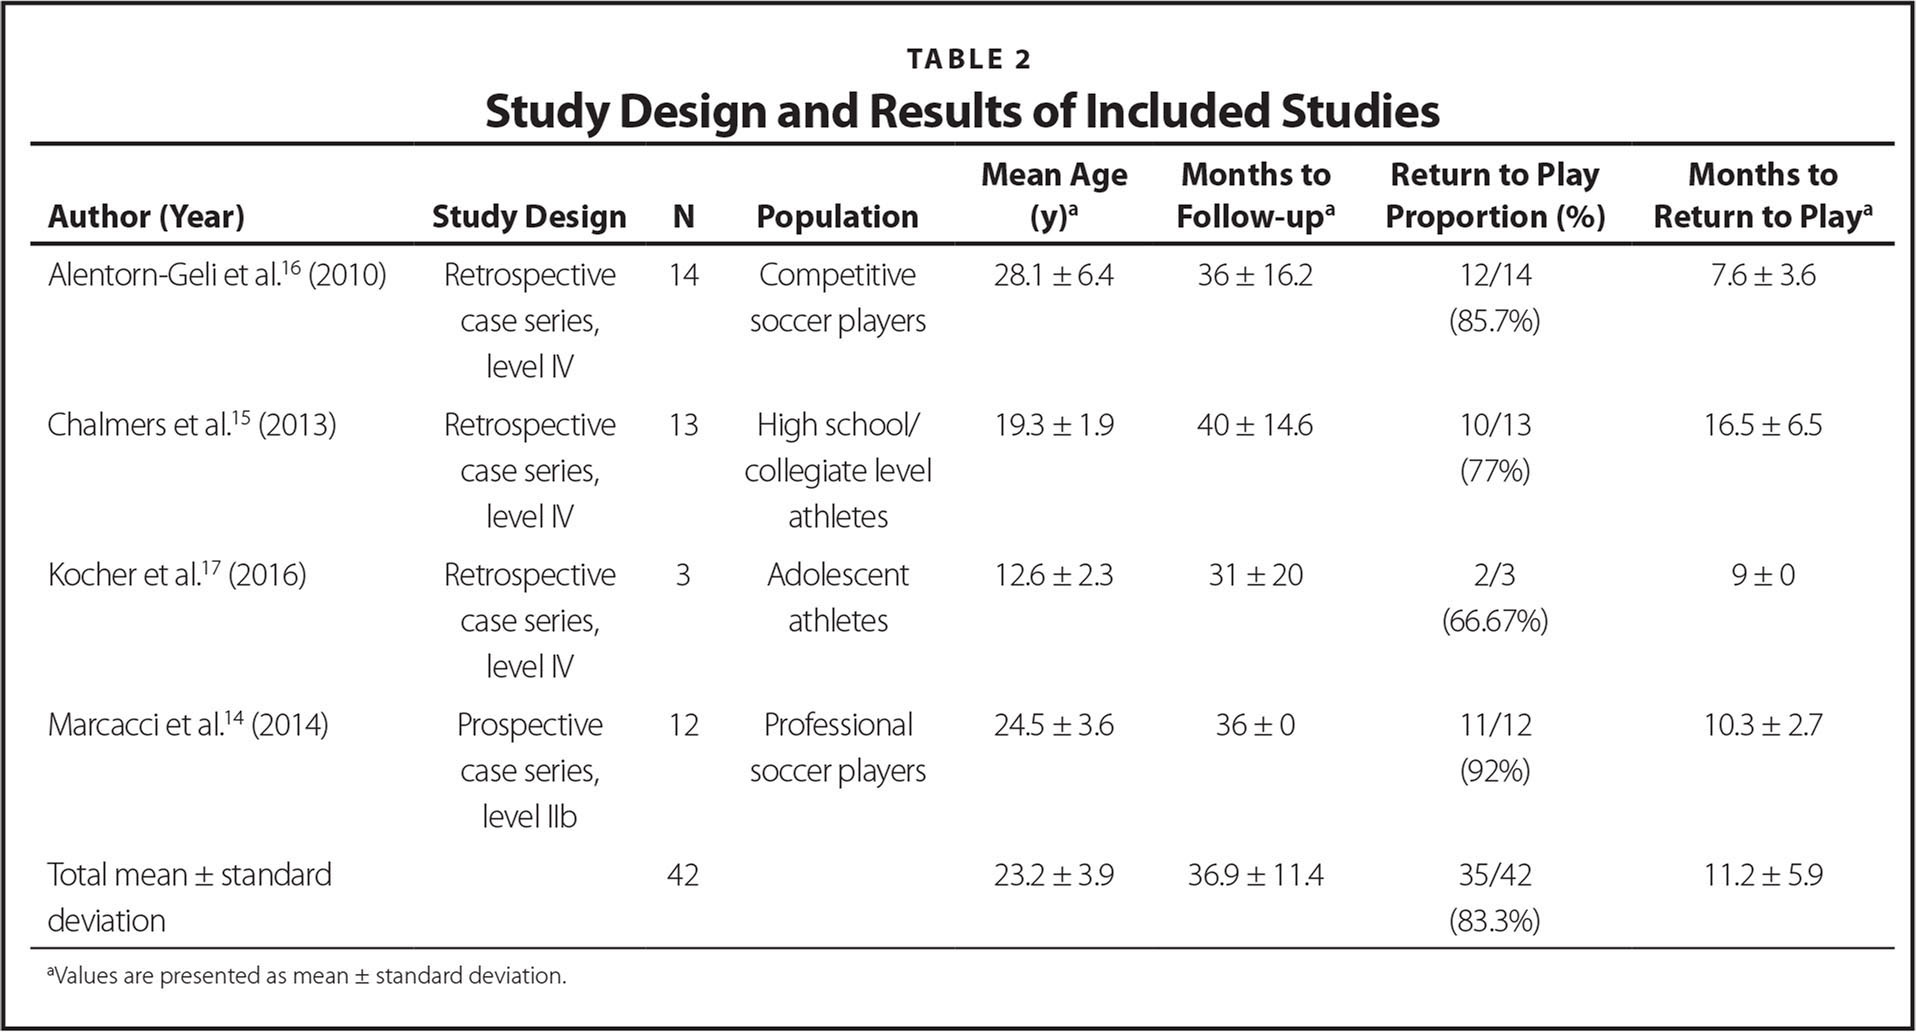 Study Design and Results of Included Studies